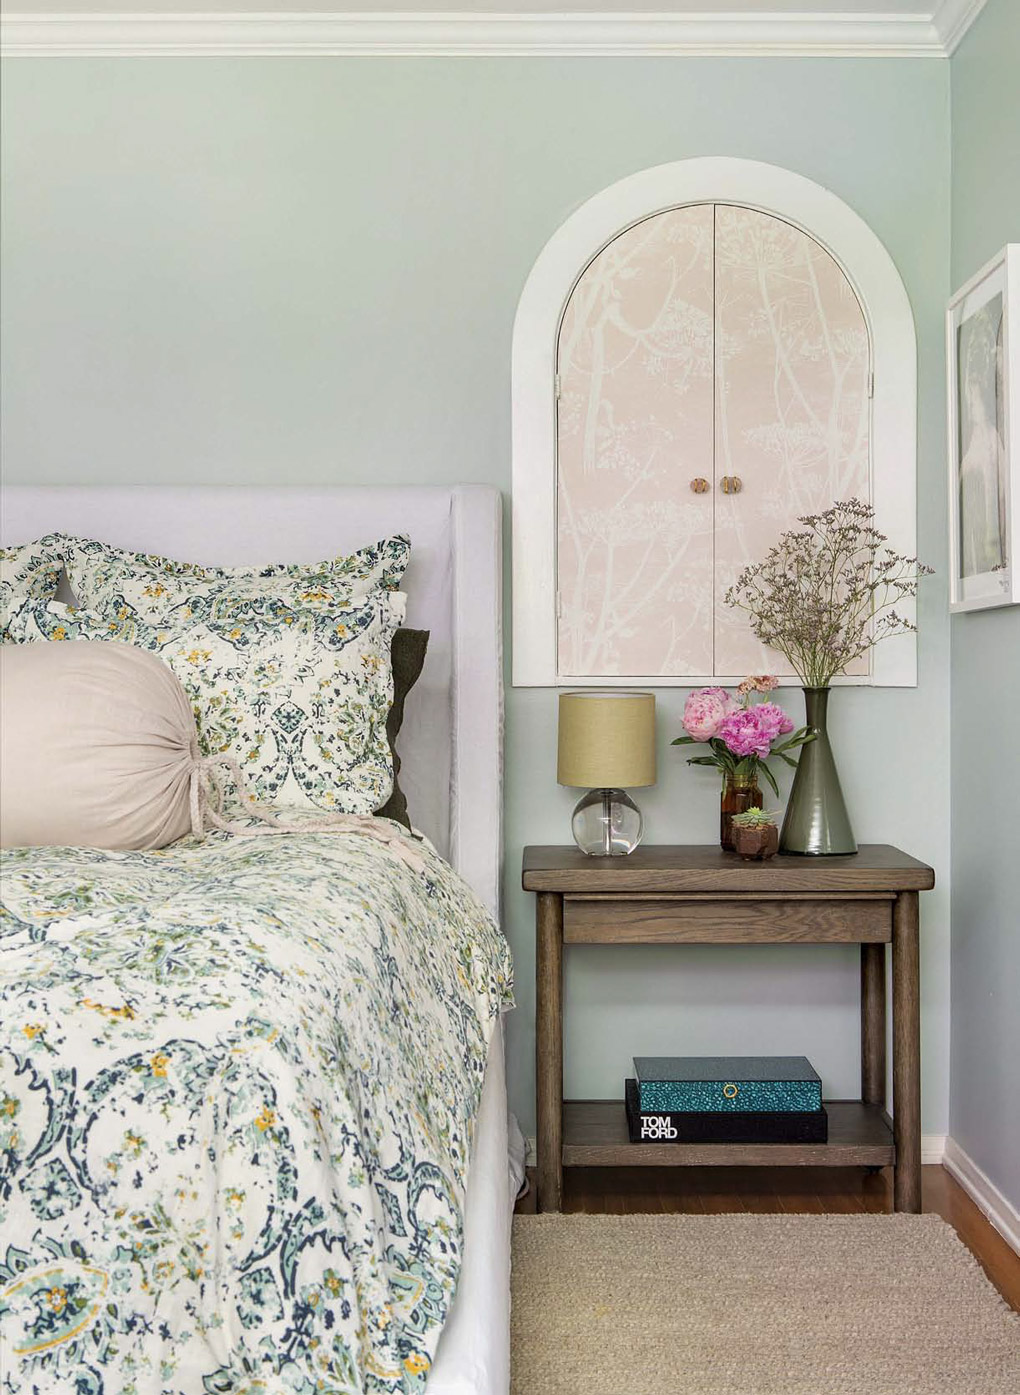 Floral bedspread with a wooden bedside table beneath a round topped storage cabinet in a California cottage master bedroom.